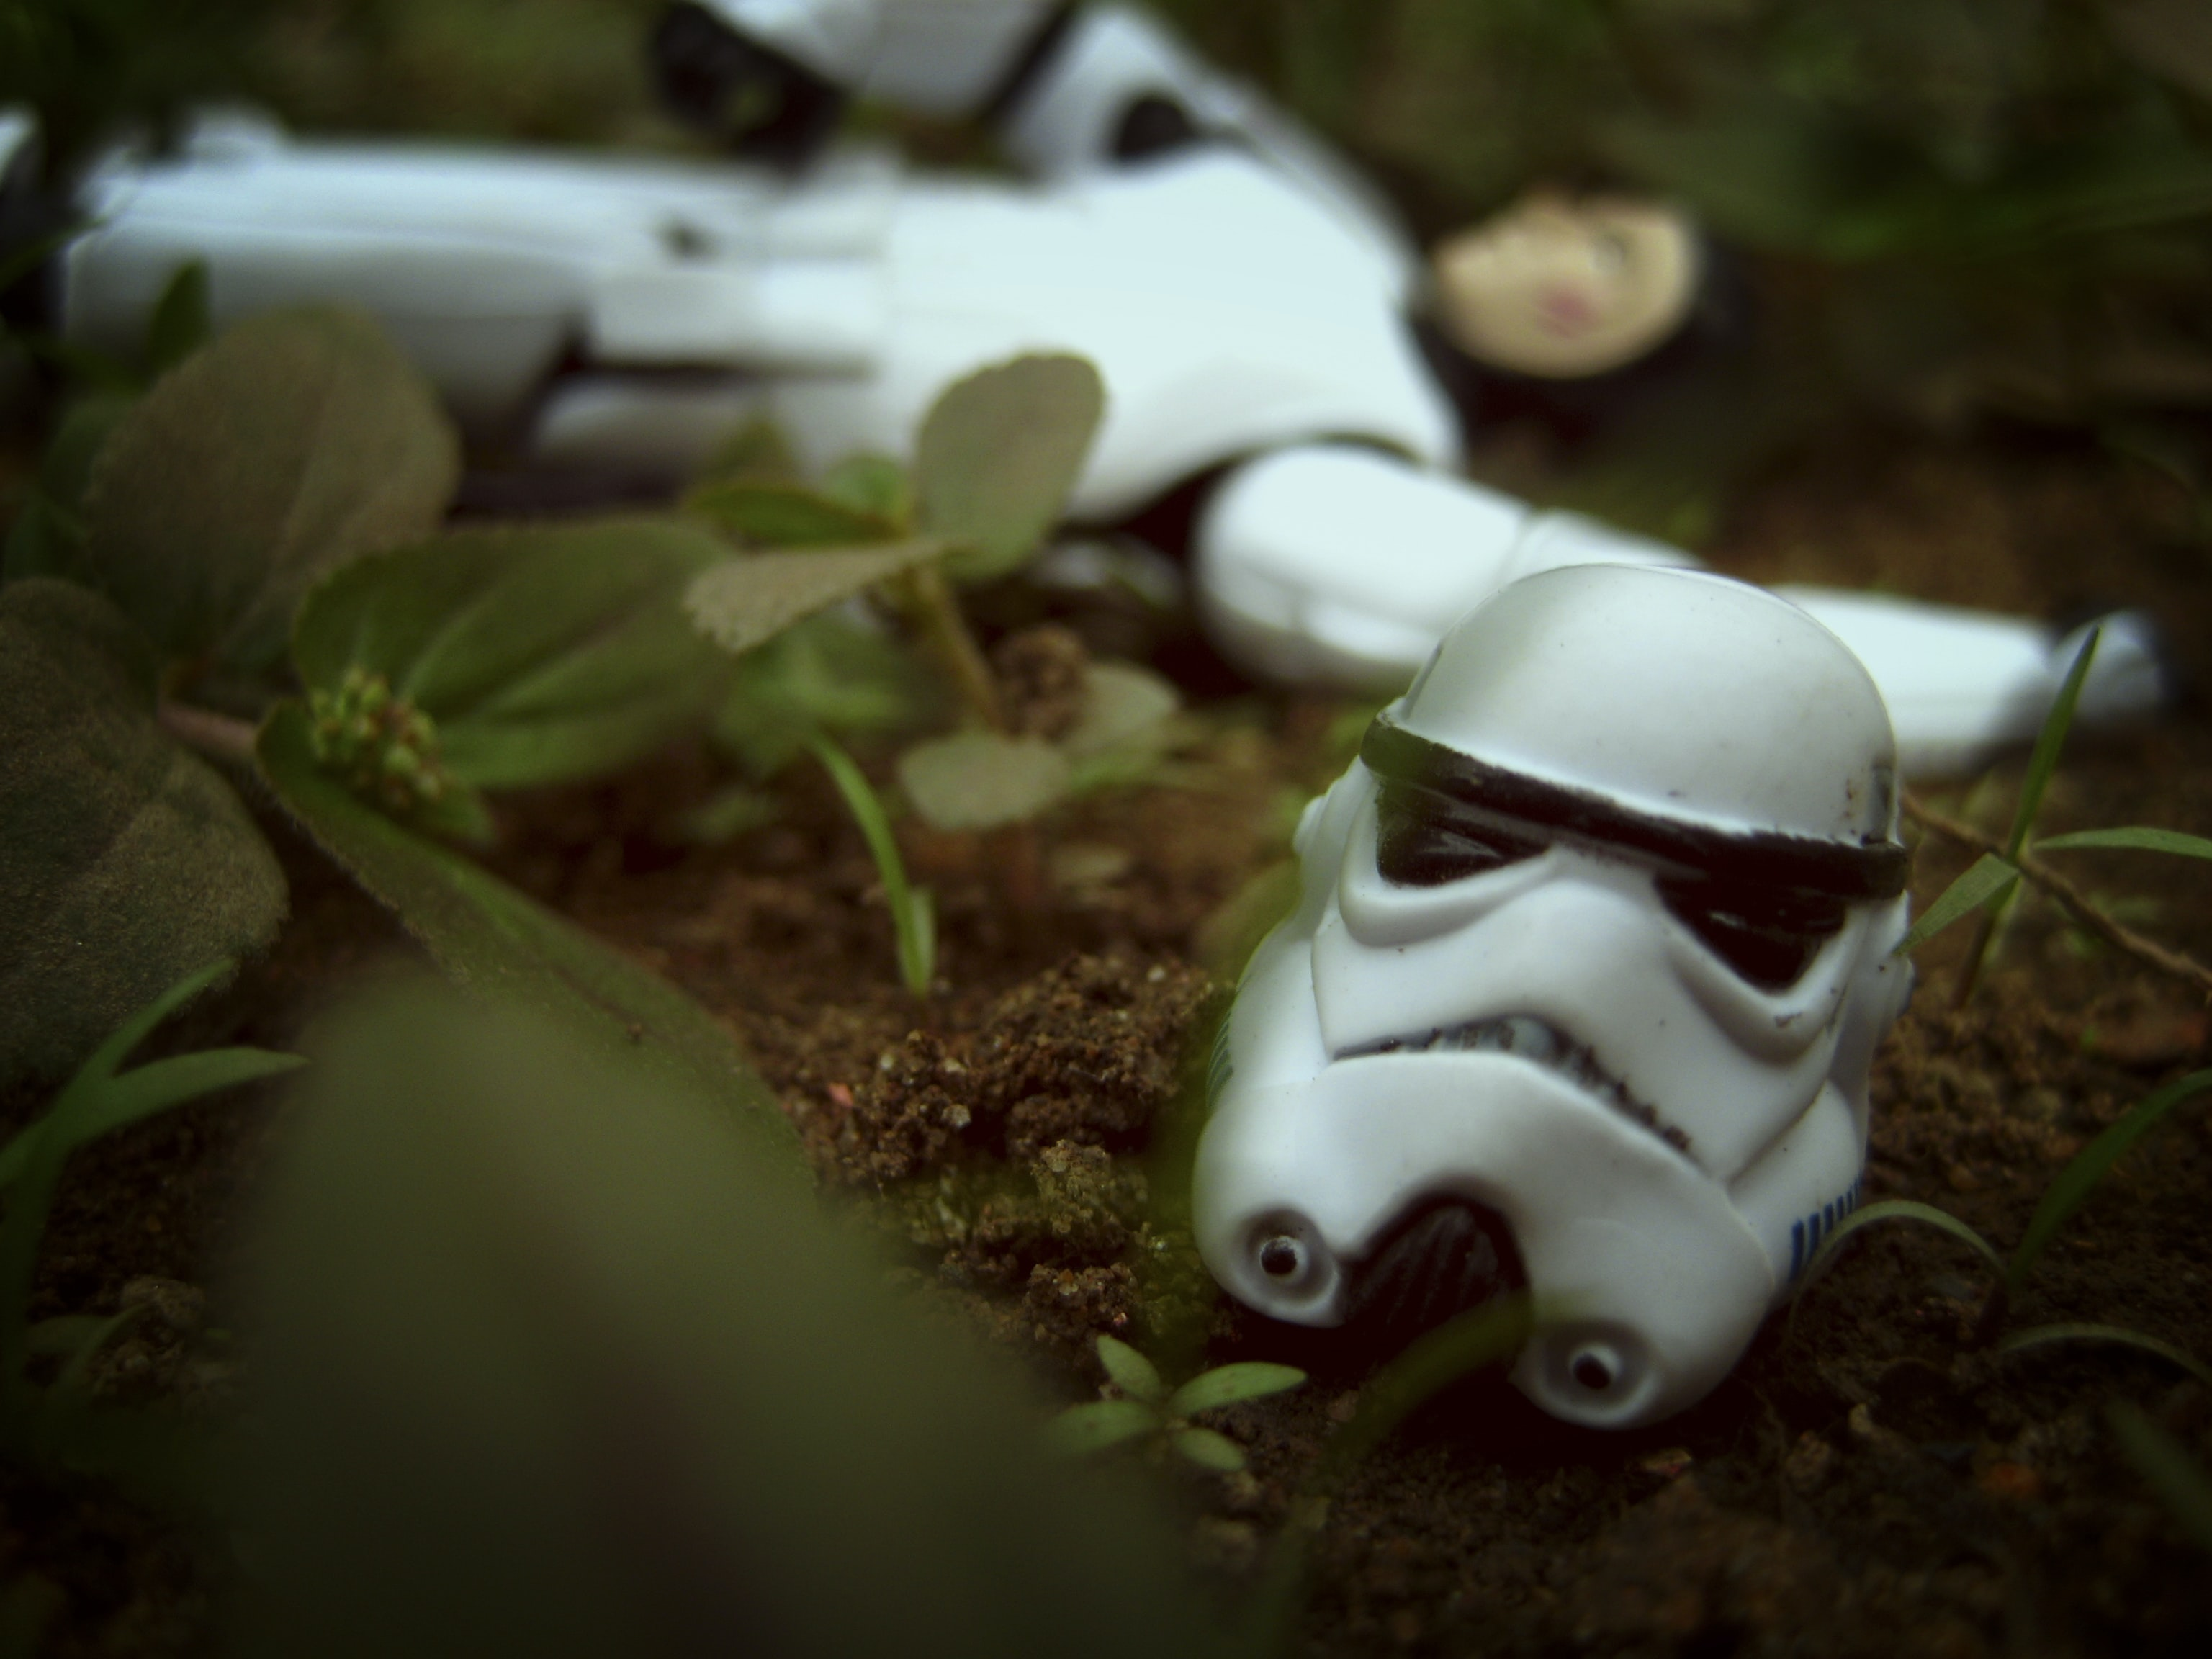 Star Wars Stormtrooper head costume on brown soil